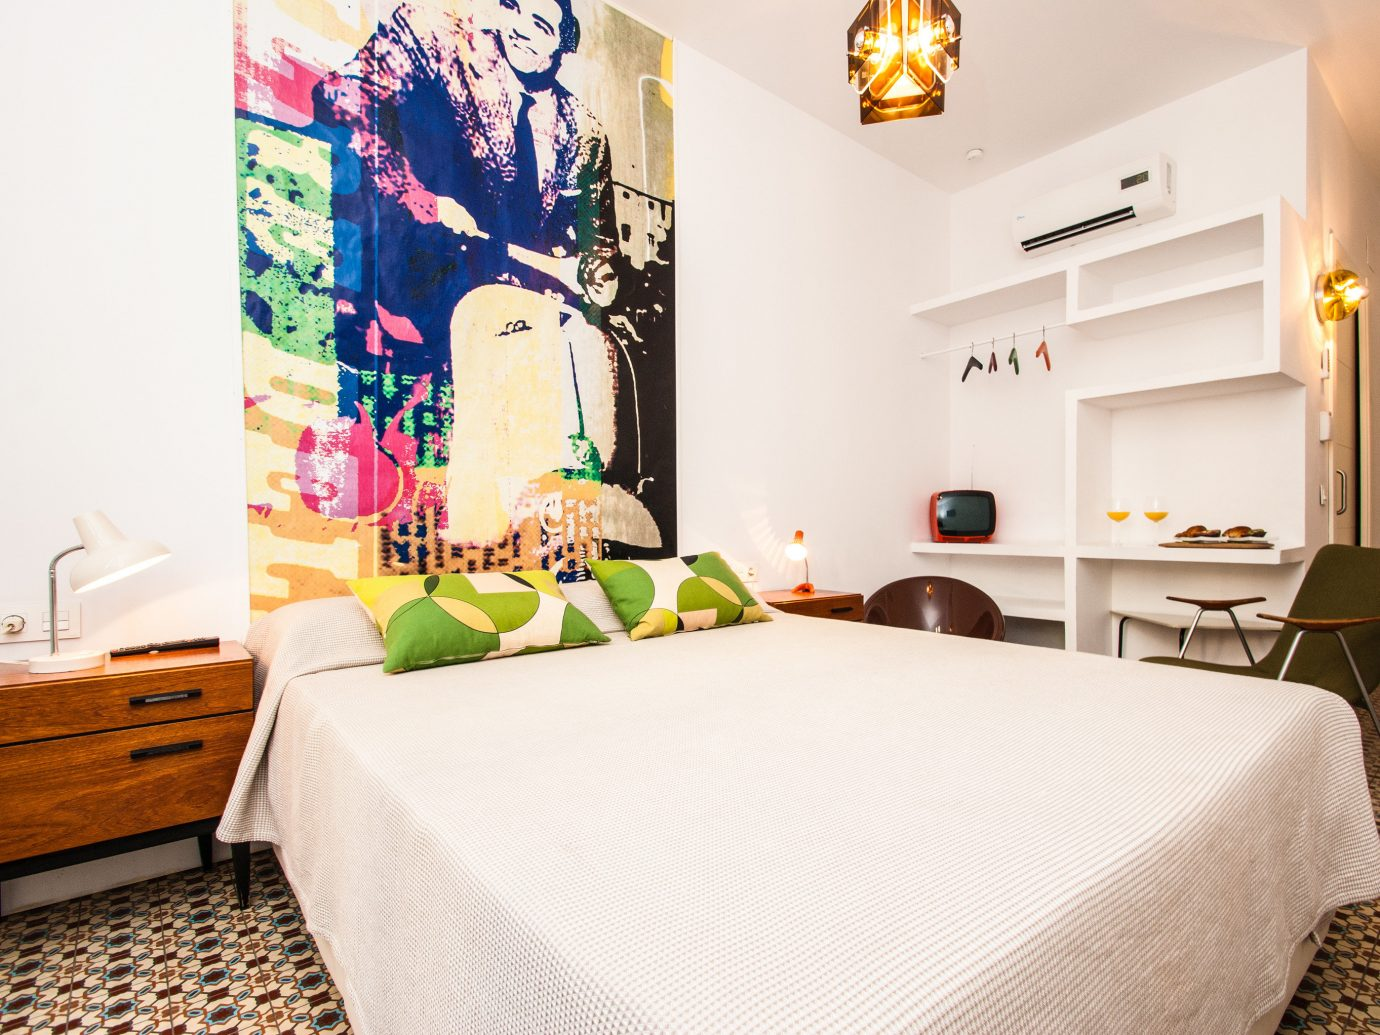 Office Guest Room Ideas That Give You More Bang For Your Us Buck: Where To Stay In Barcelona And Madrid For Under $250